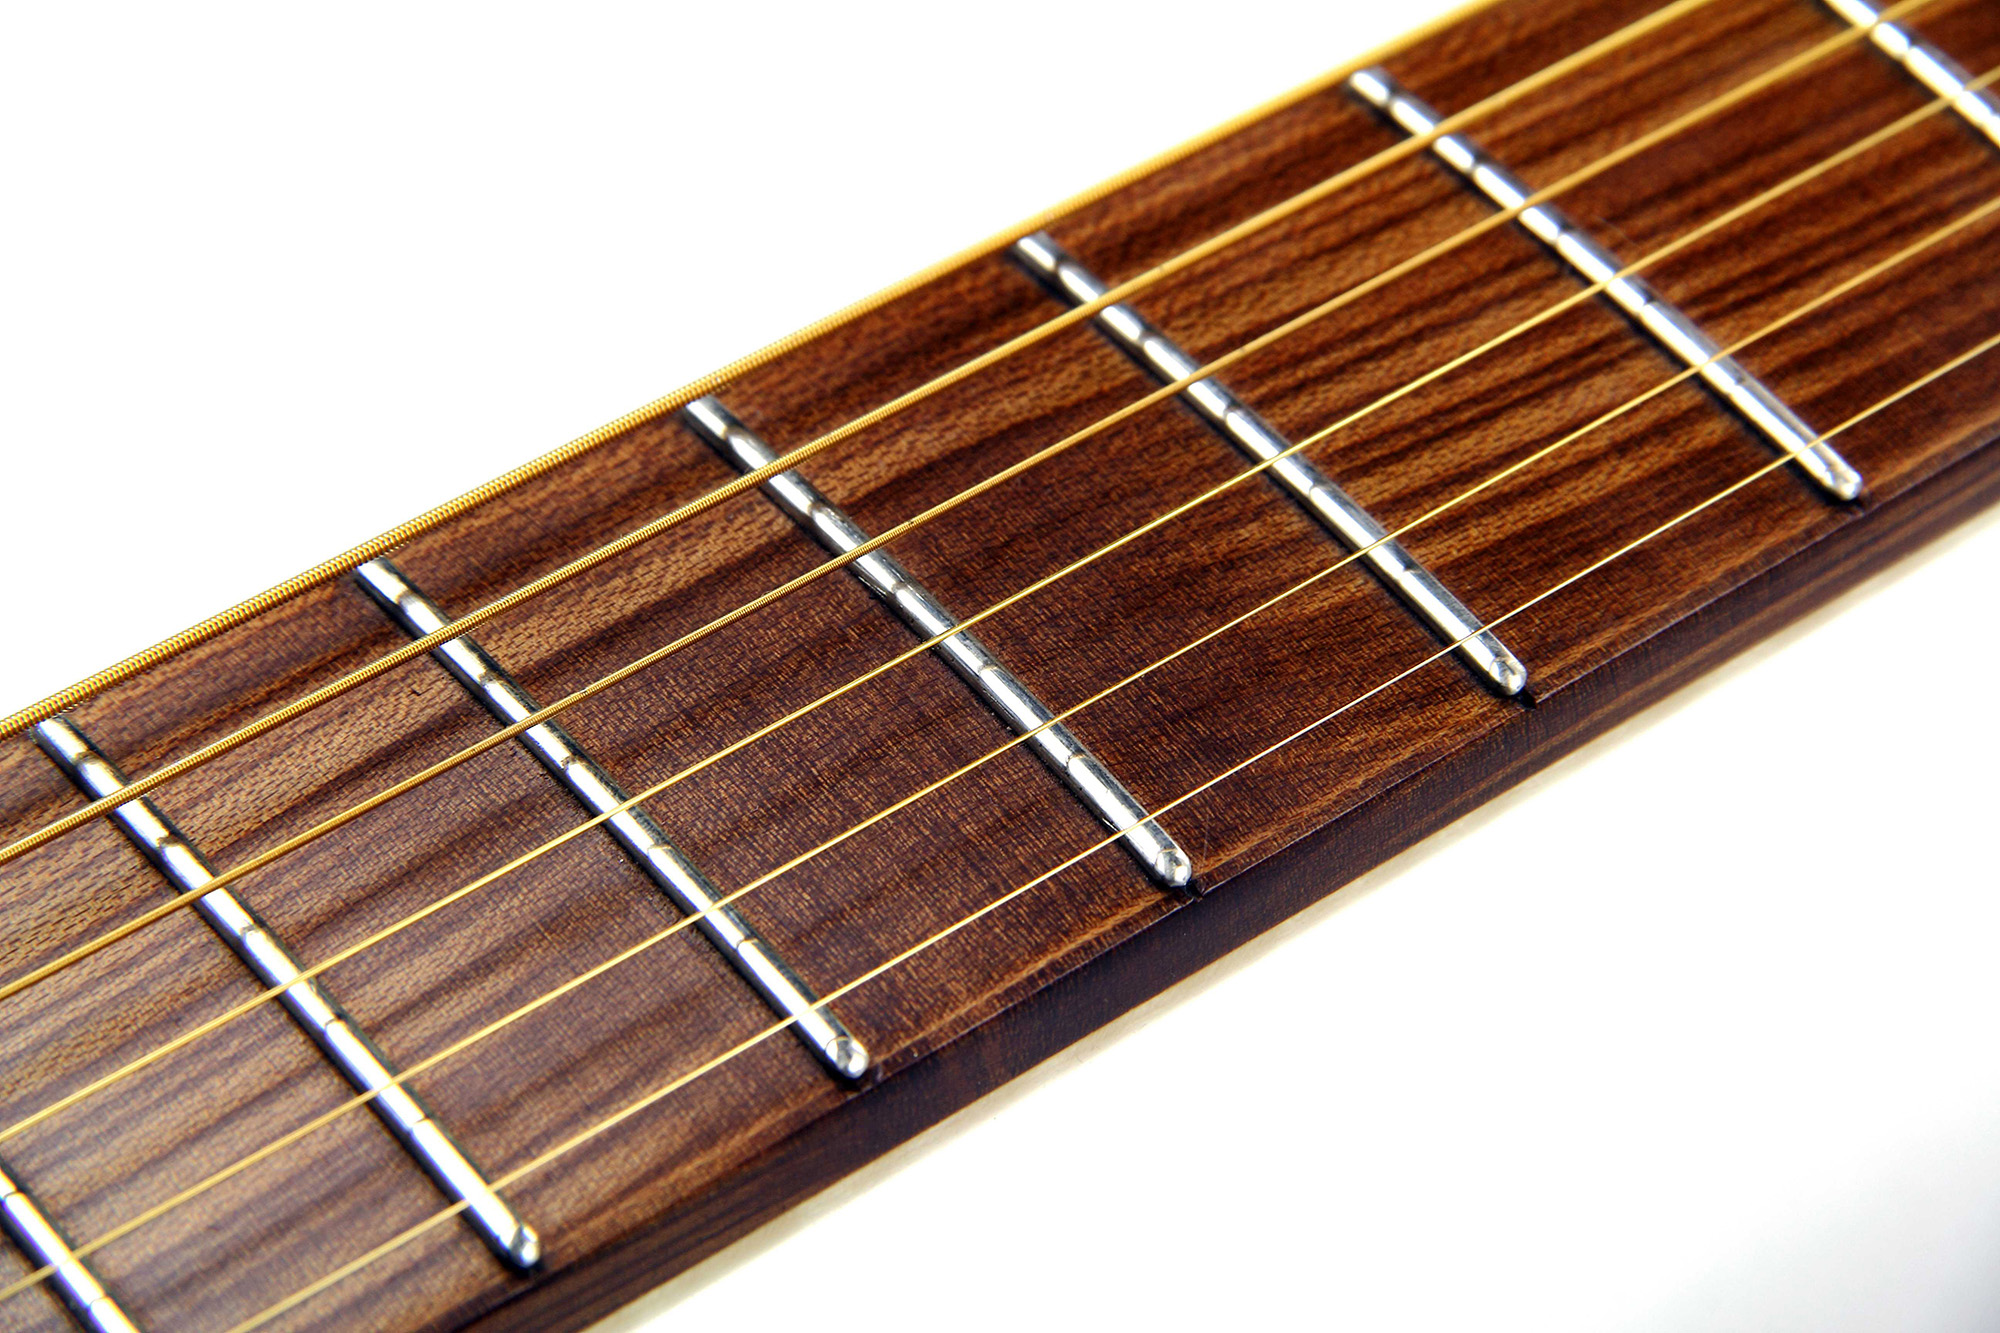 Fretboard from Sonowood maple on a CannaGuitar